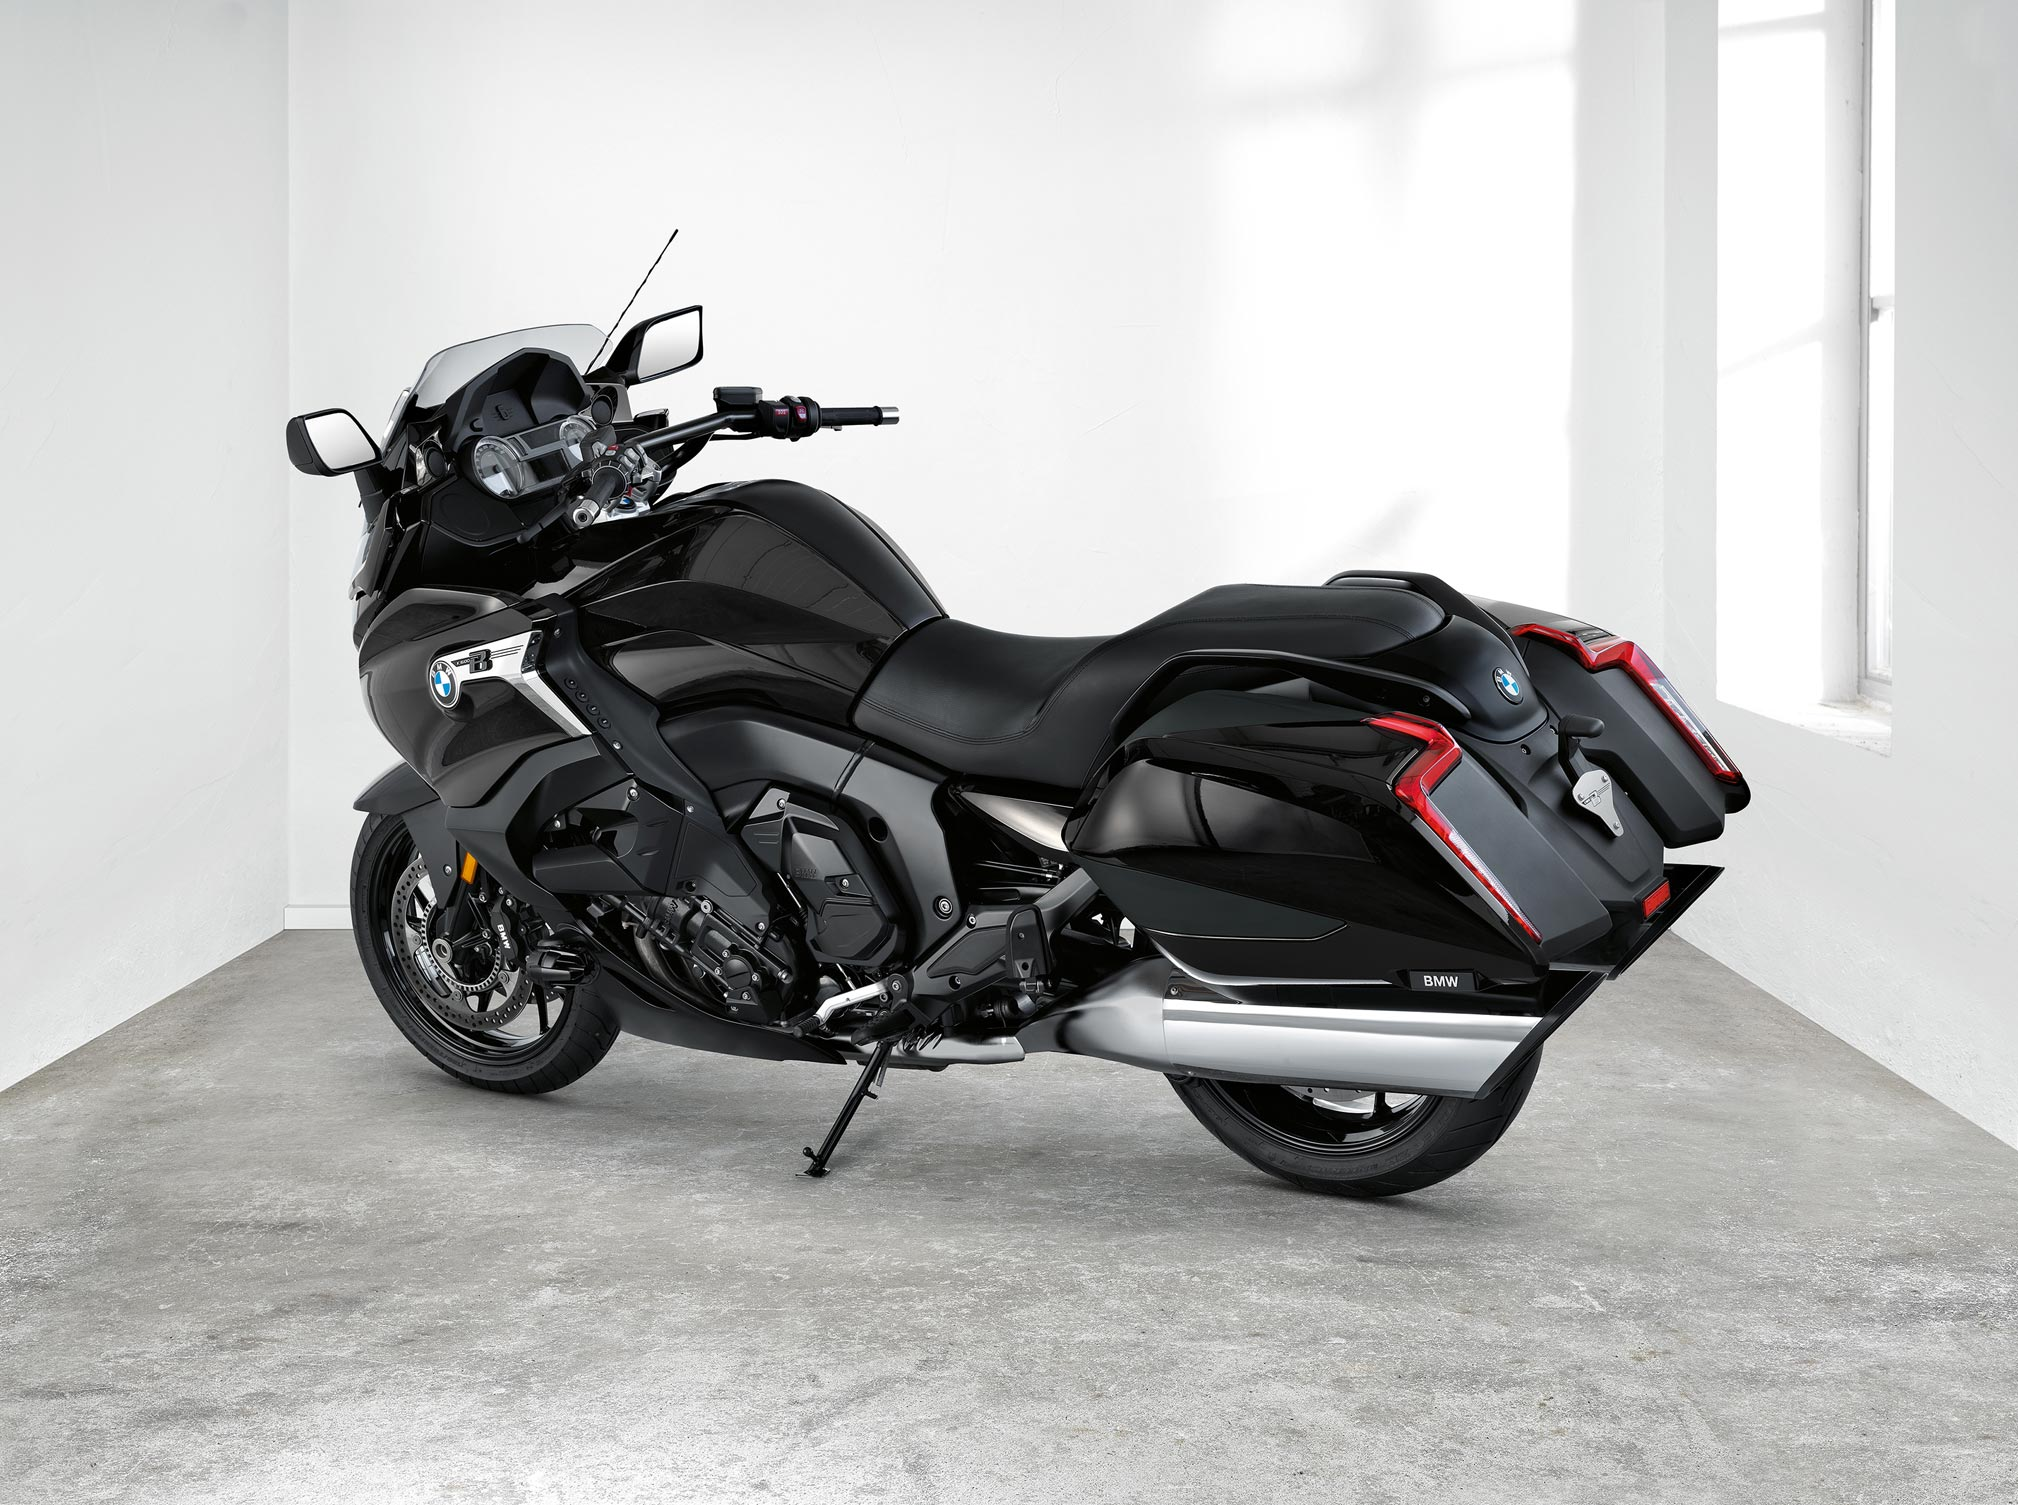 2018 BMW K1600B Review - TotalMotorcycle